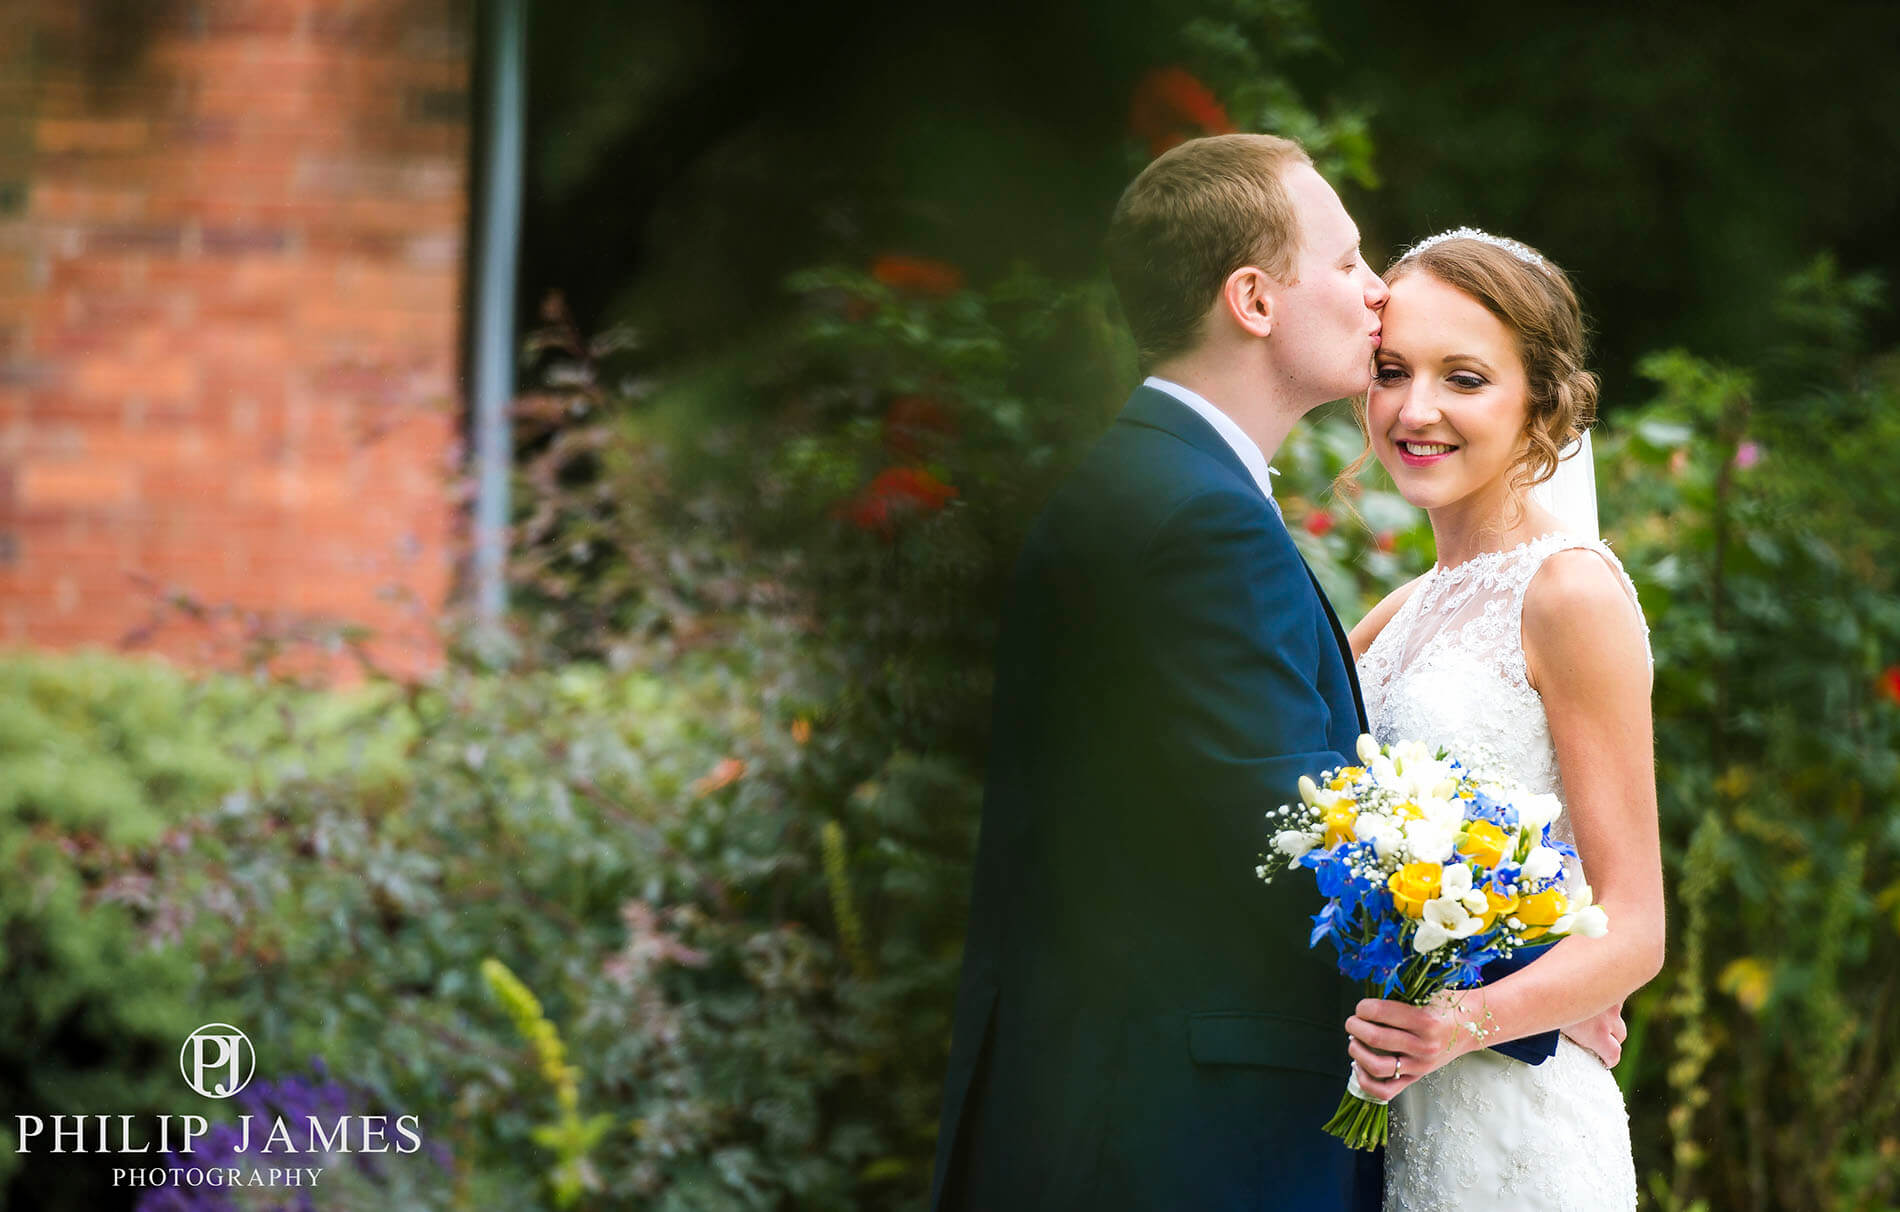 Philip James specializing in Wedding Photography Birmingham - Moments (119 of 170)